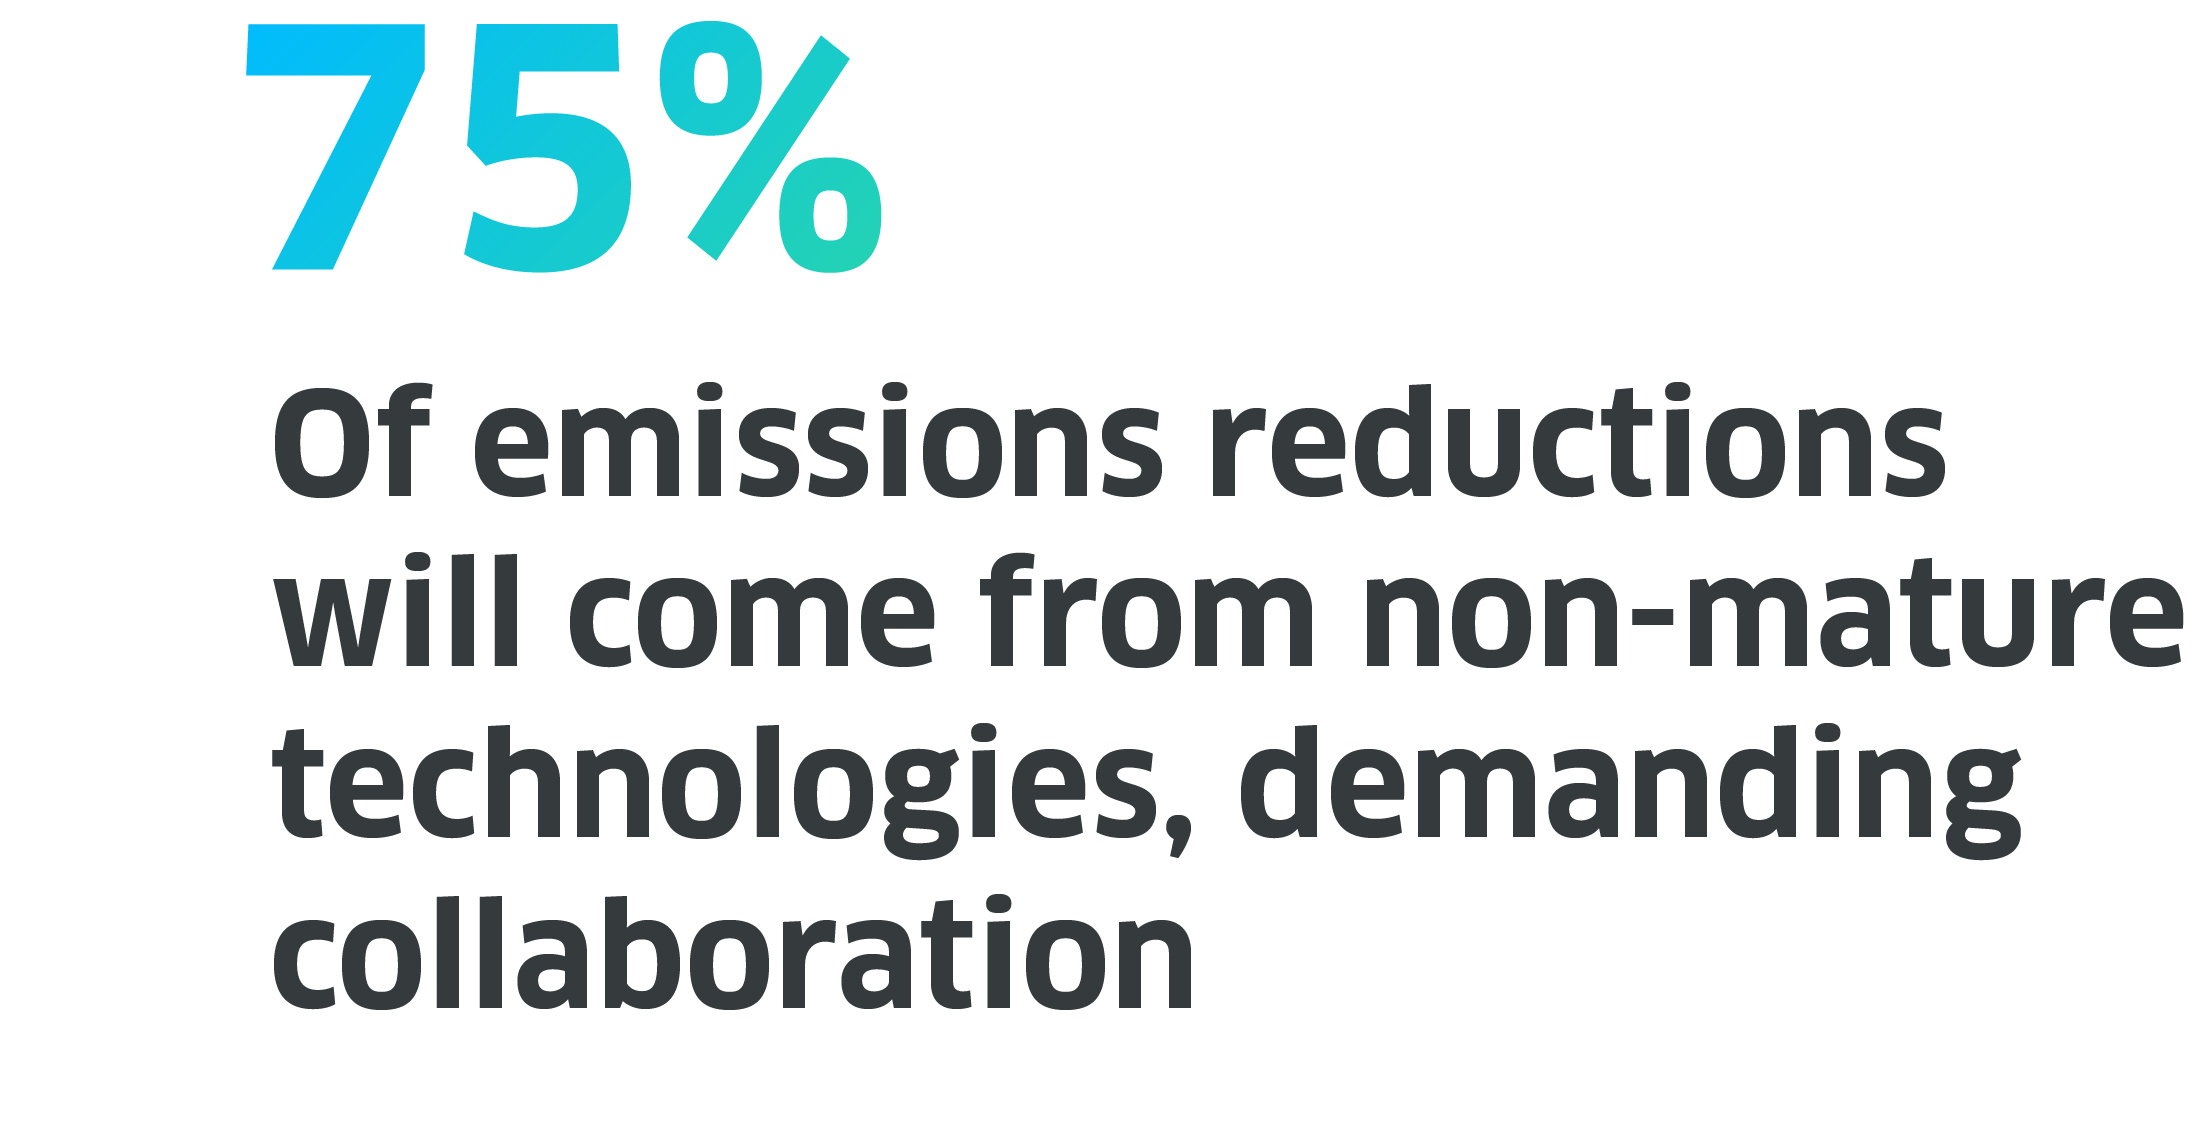 7% of emissions reductons will come from non mature tech